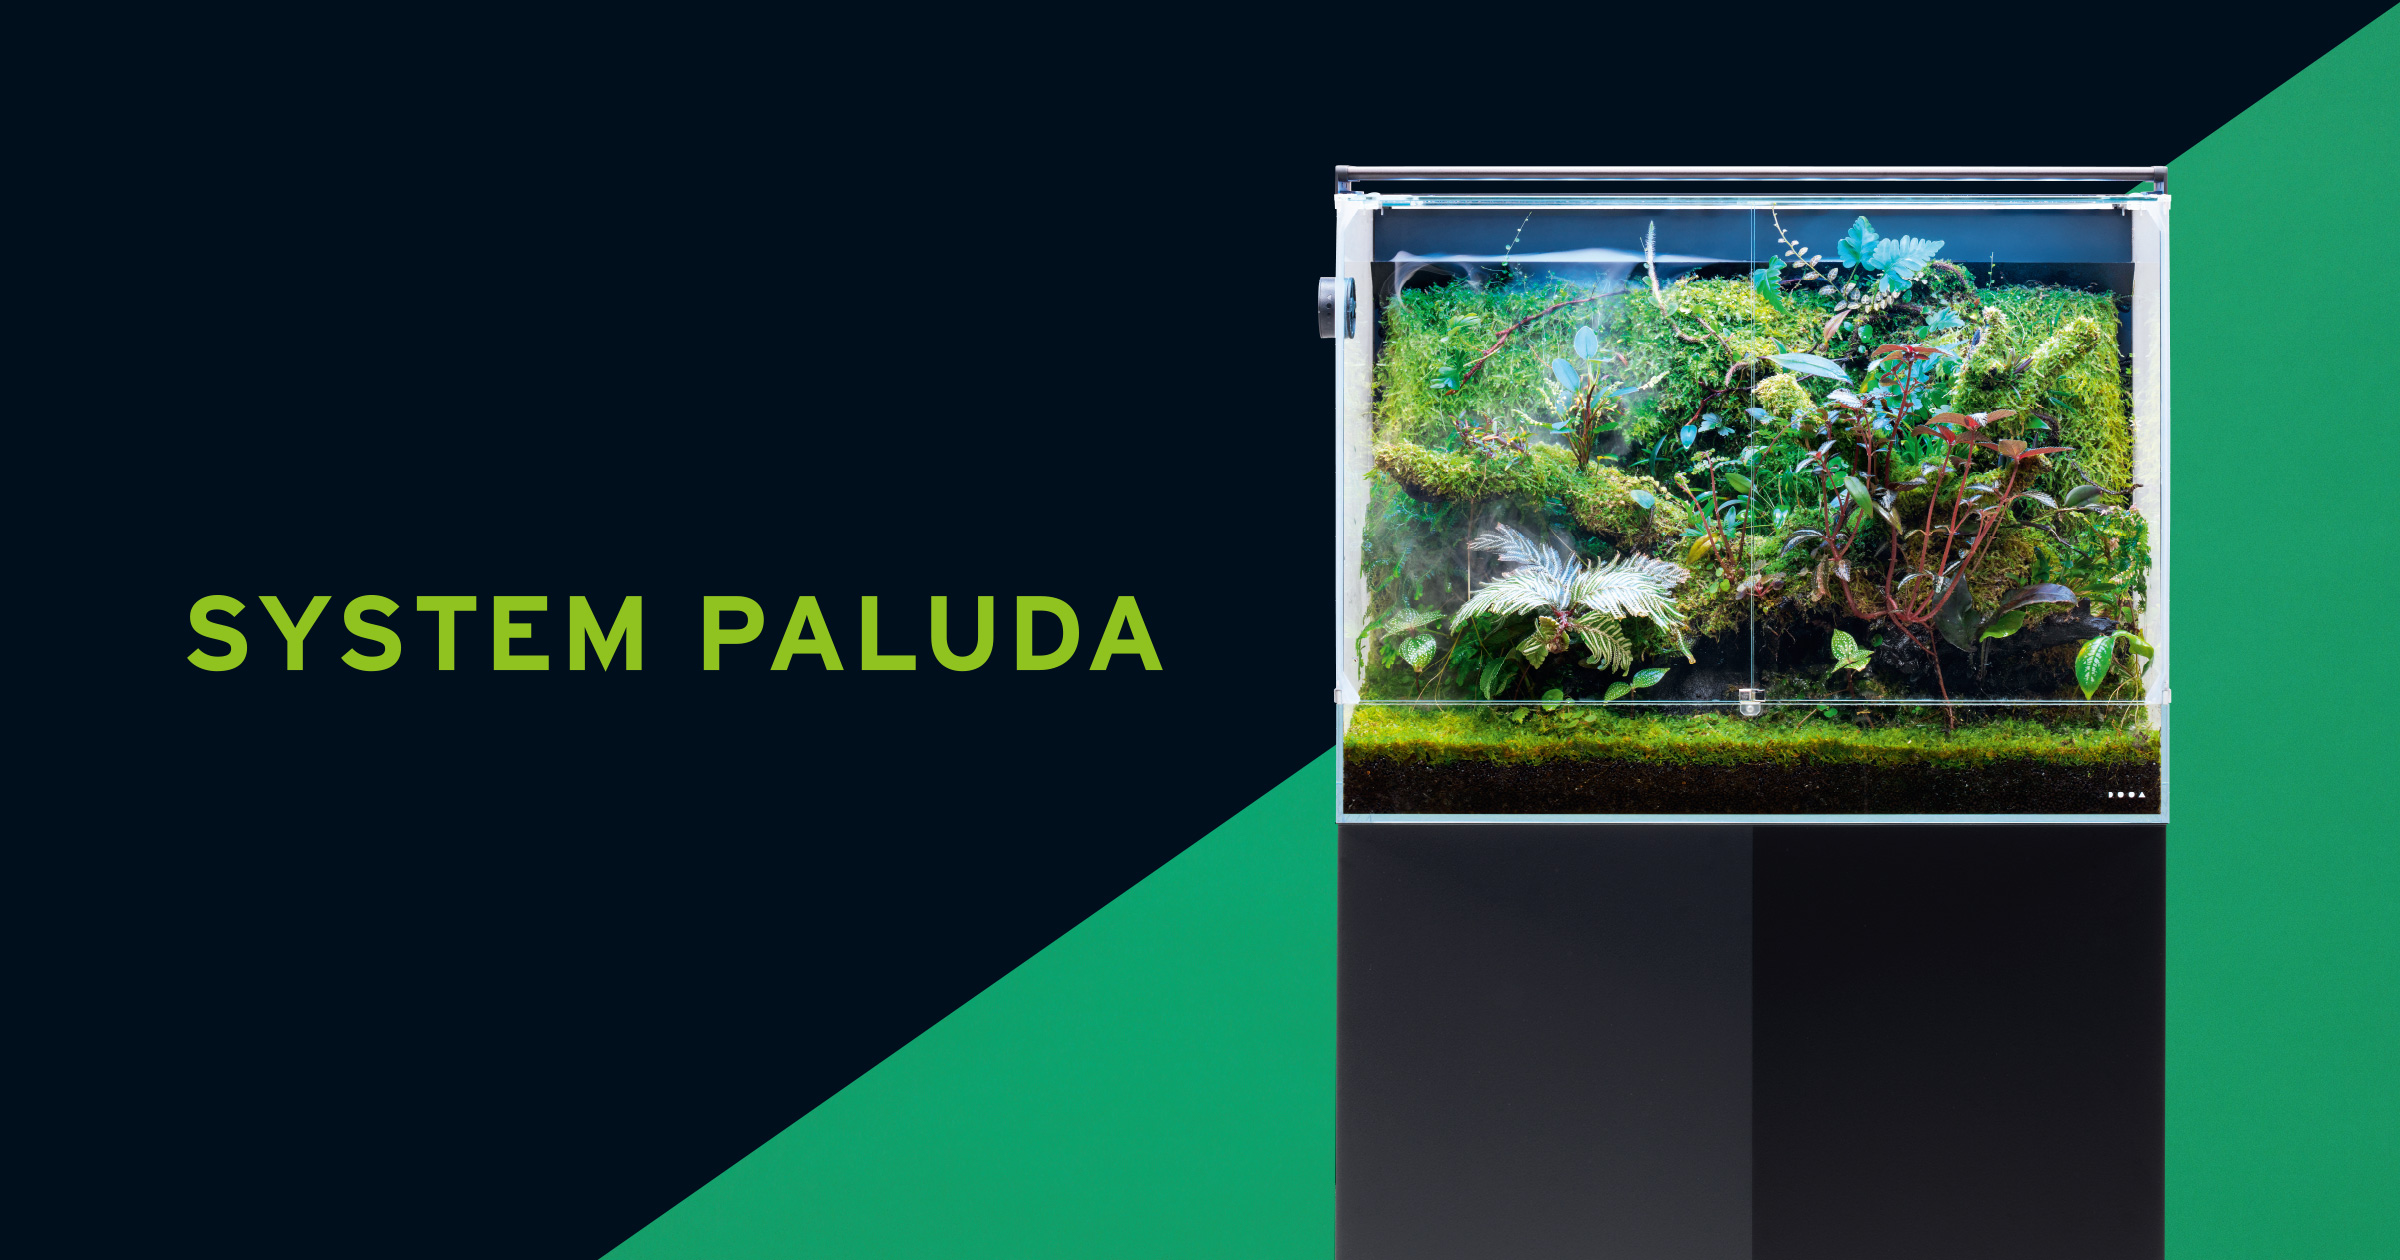 DOOA SYSTEM PALUDA 60 'Reproduce the Environment of Tropical Cloud Forests with Blue Tinted Light and Mist'